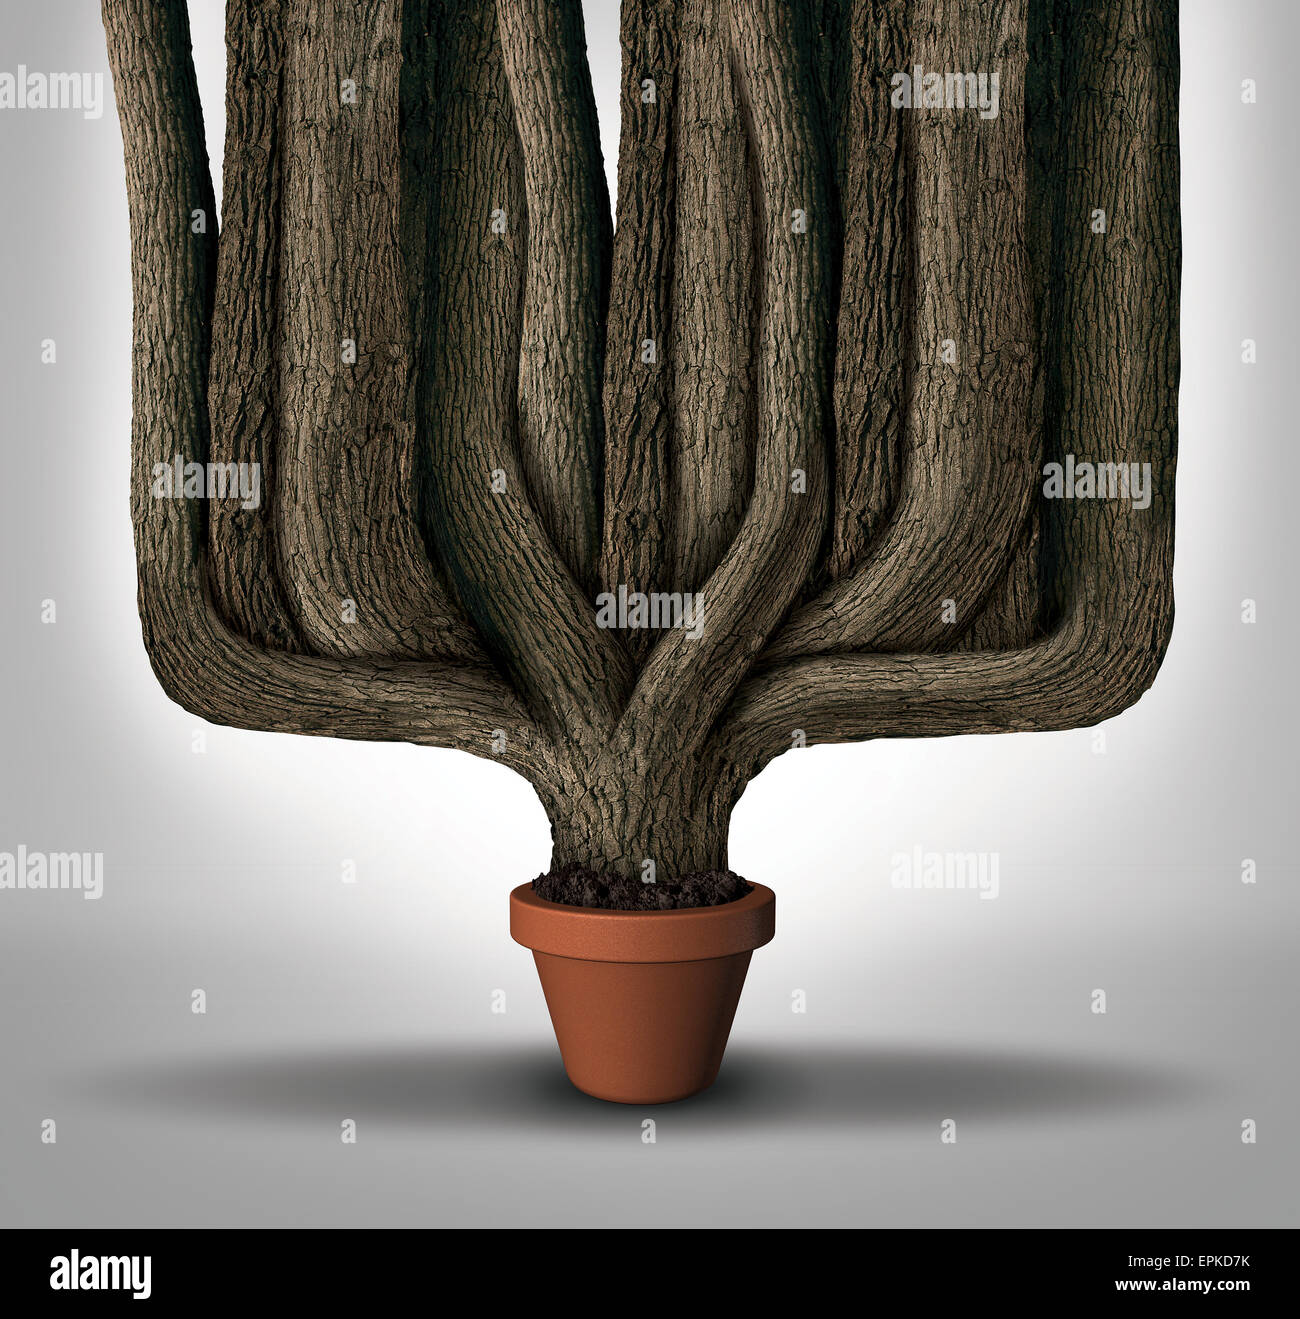 Exceed expectations business concept or maximum potential and outperform metaphor as a small flower pot with a giant - Stock Image